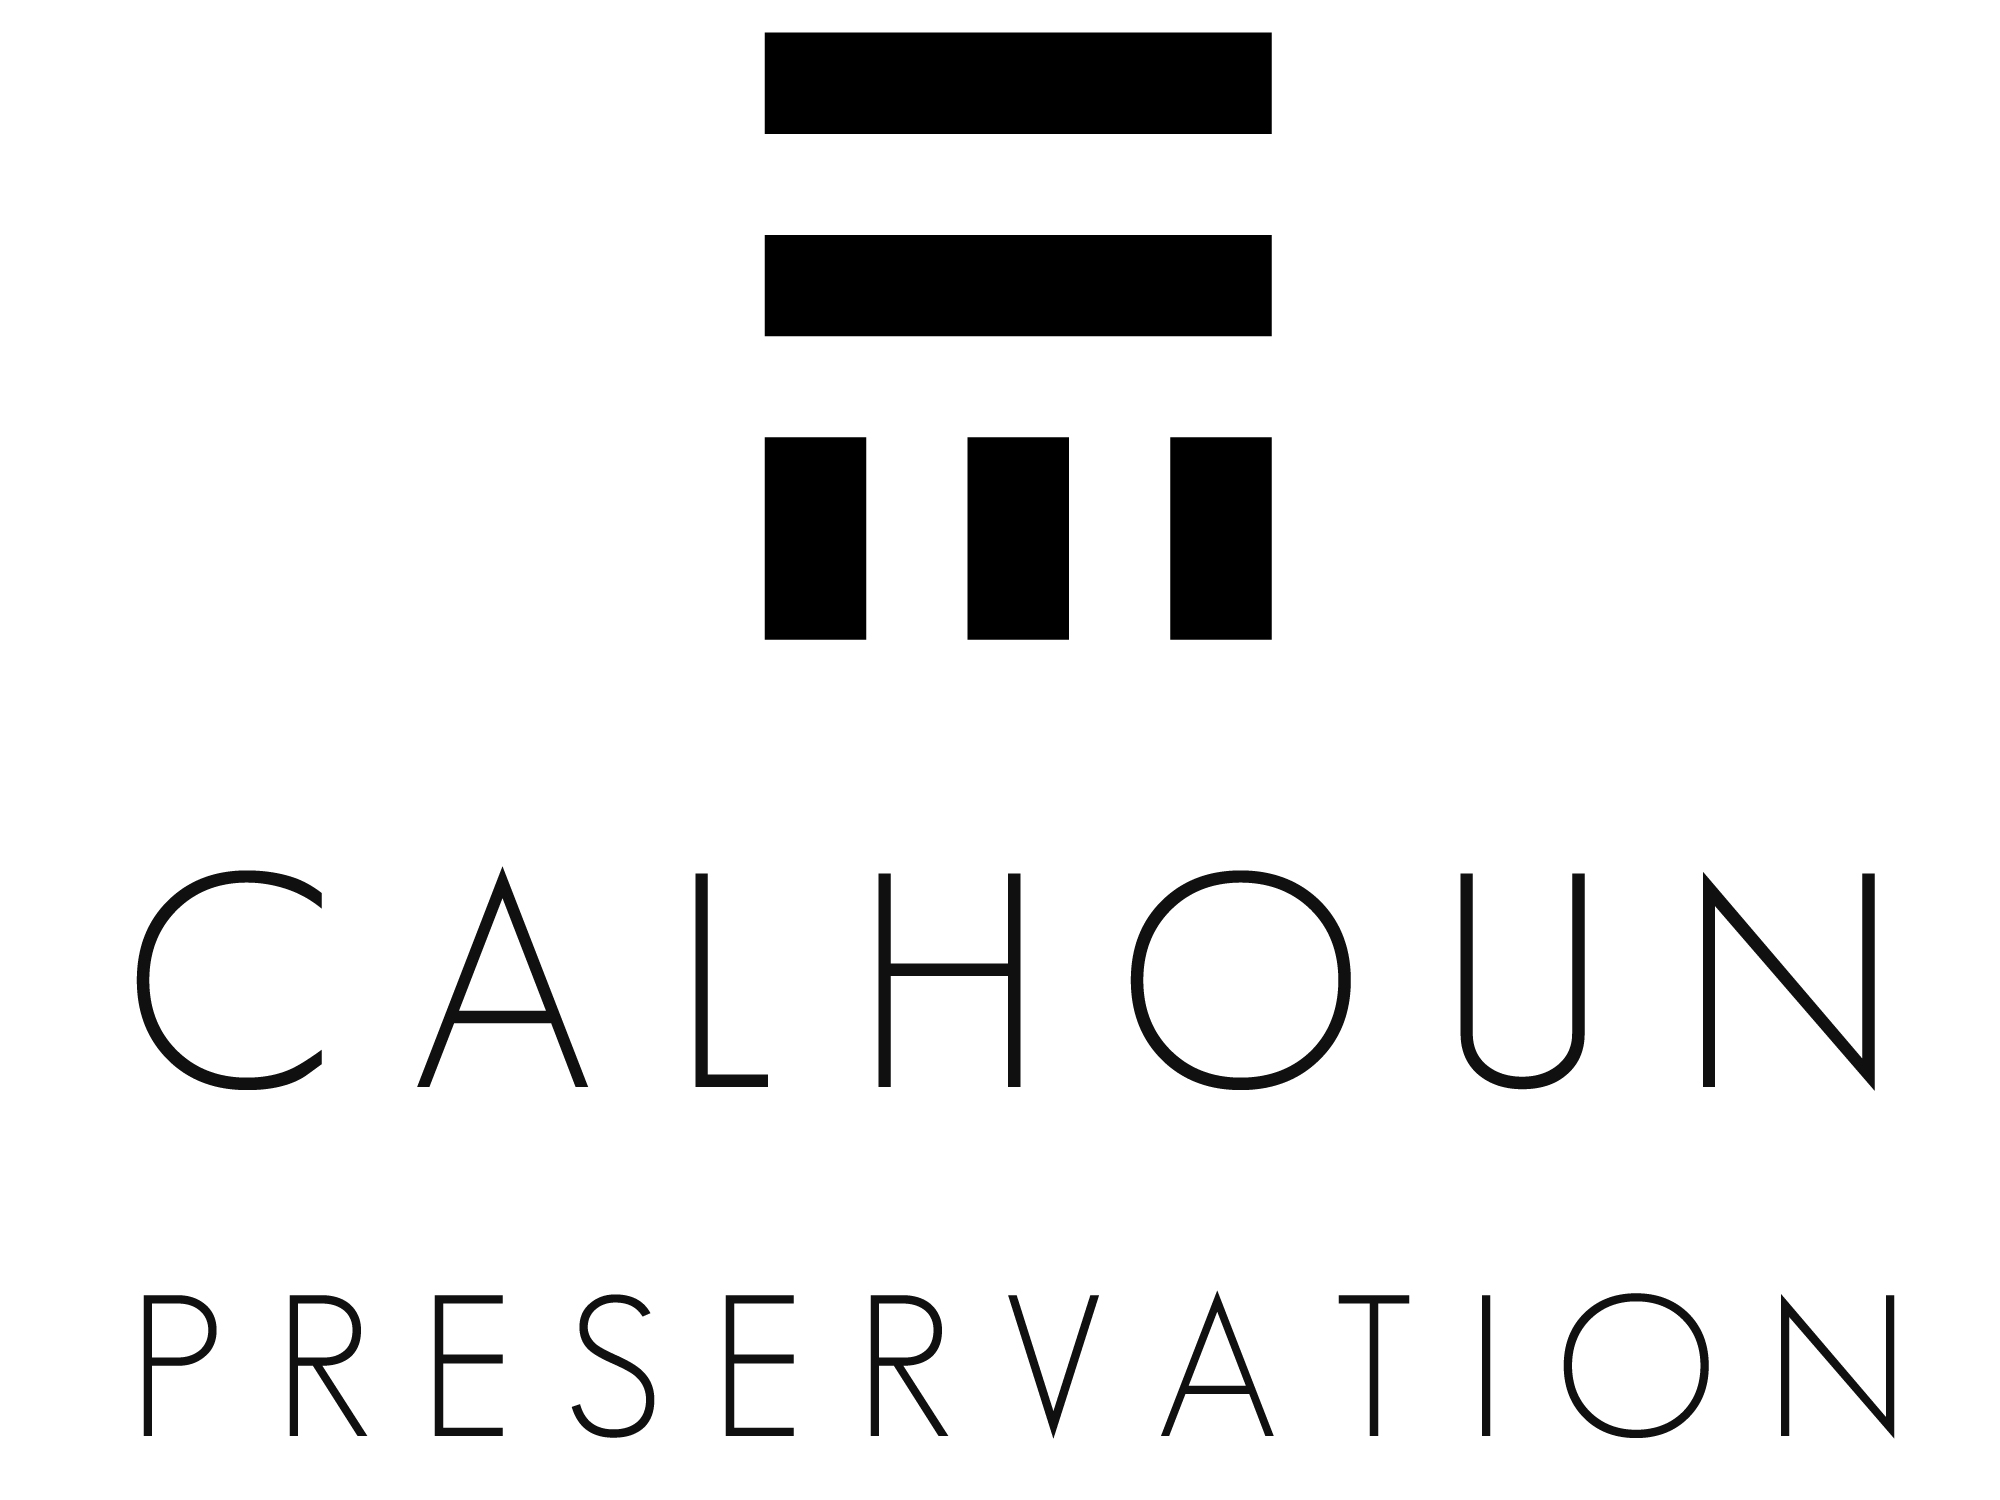 calhpres - Calhoun Preservation is a historic preservation firm based out of New Orleans, Louisiana.  The firm's consultants have varying experience in the fields of historic preservation, architecture, and development.  We bring a fresh approach in putting historic buildings back into the highest and best use. Services include Federal and State Historic Tax Credit applications, National Register of Historic Places & National Historic Landmark  nominations, property tax appeals, property research, building documentation, historic research, property information packets, grant writing and individual/group building surveys.Our consultants work to provide the public an understanding and appreciation of the historic structures through rehabilitation, research, surveys and documentation.  Licensed in to practice real estate transactions, as well.